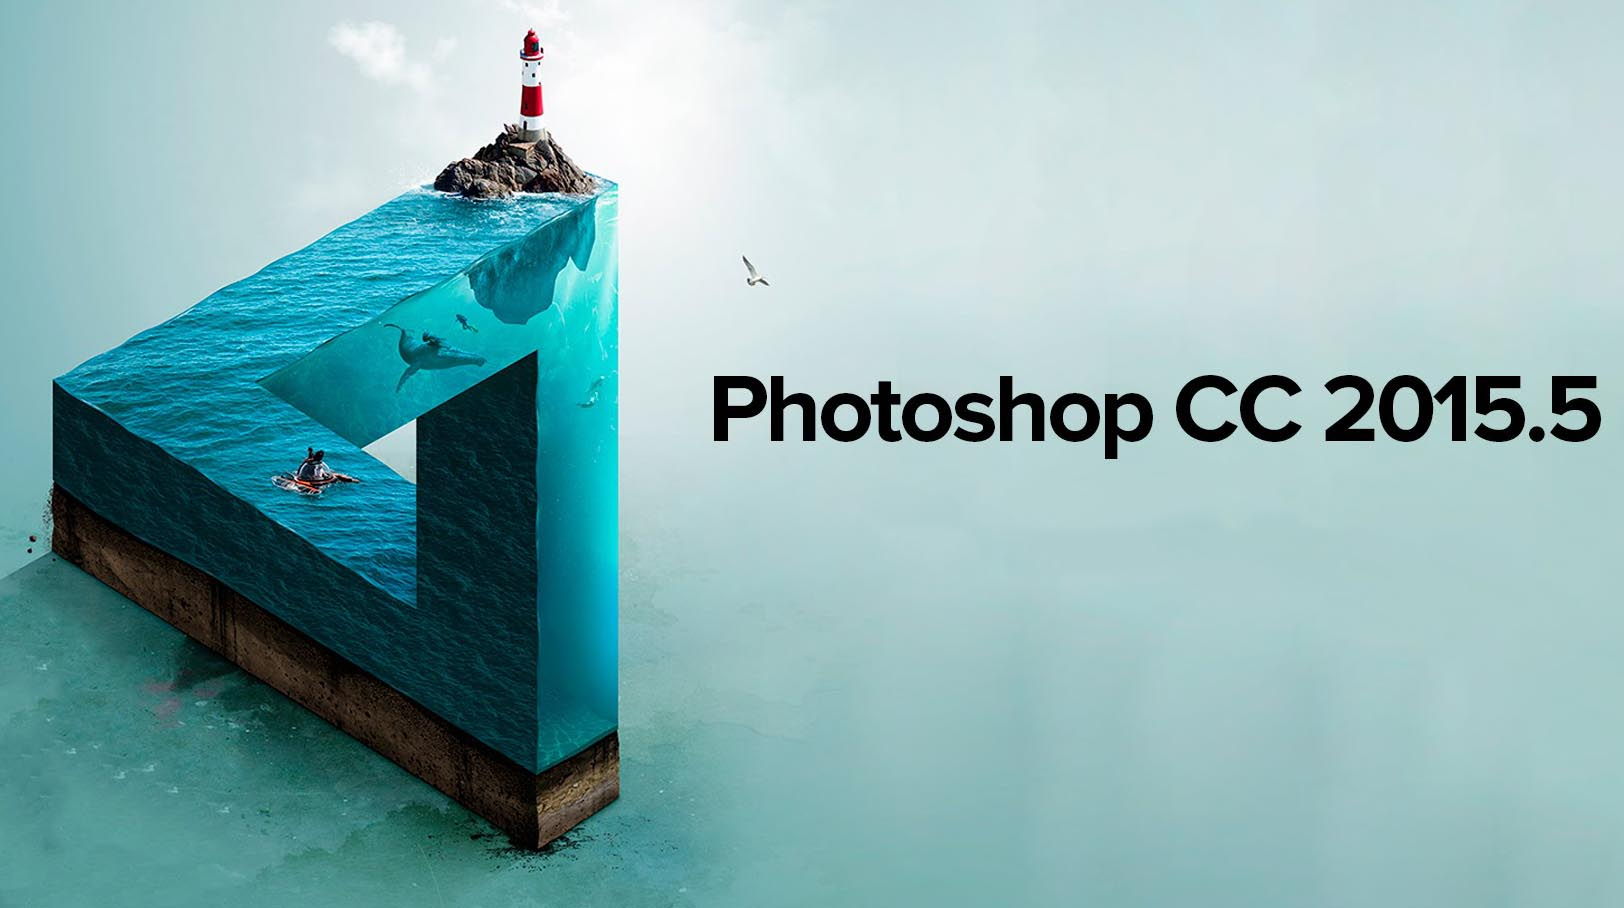 Adobe Photoshop 2015.5 direct download link